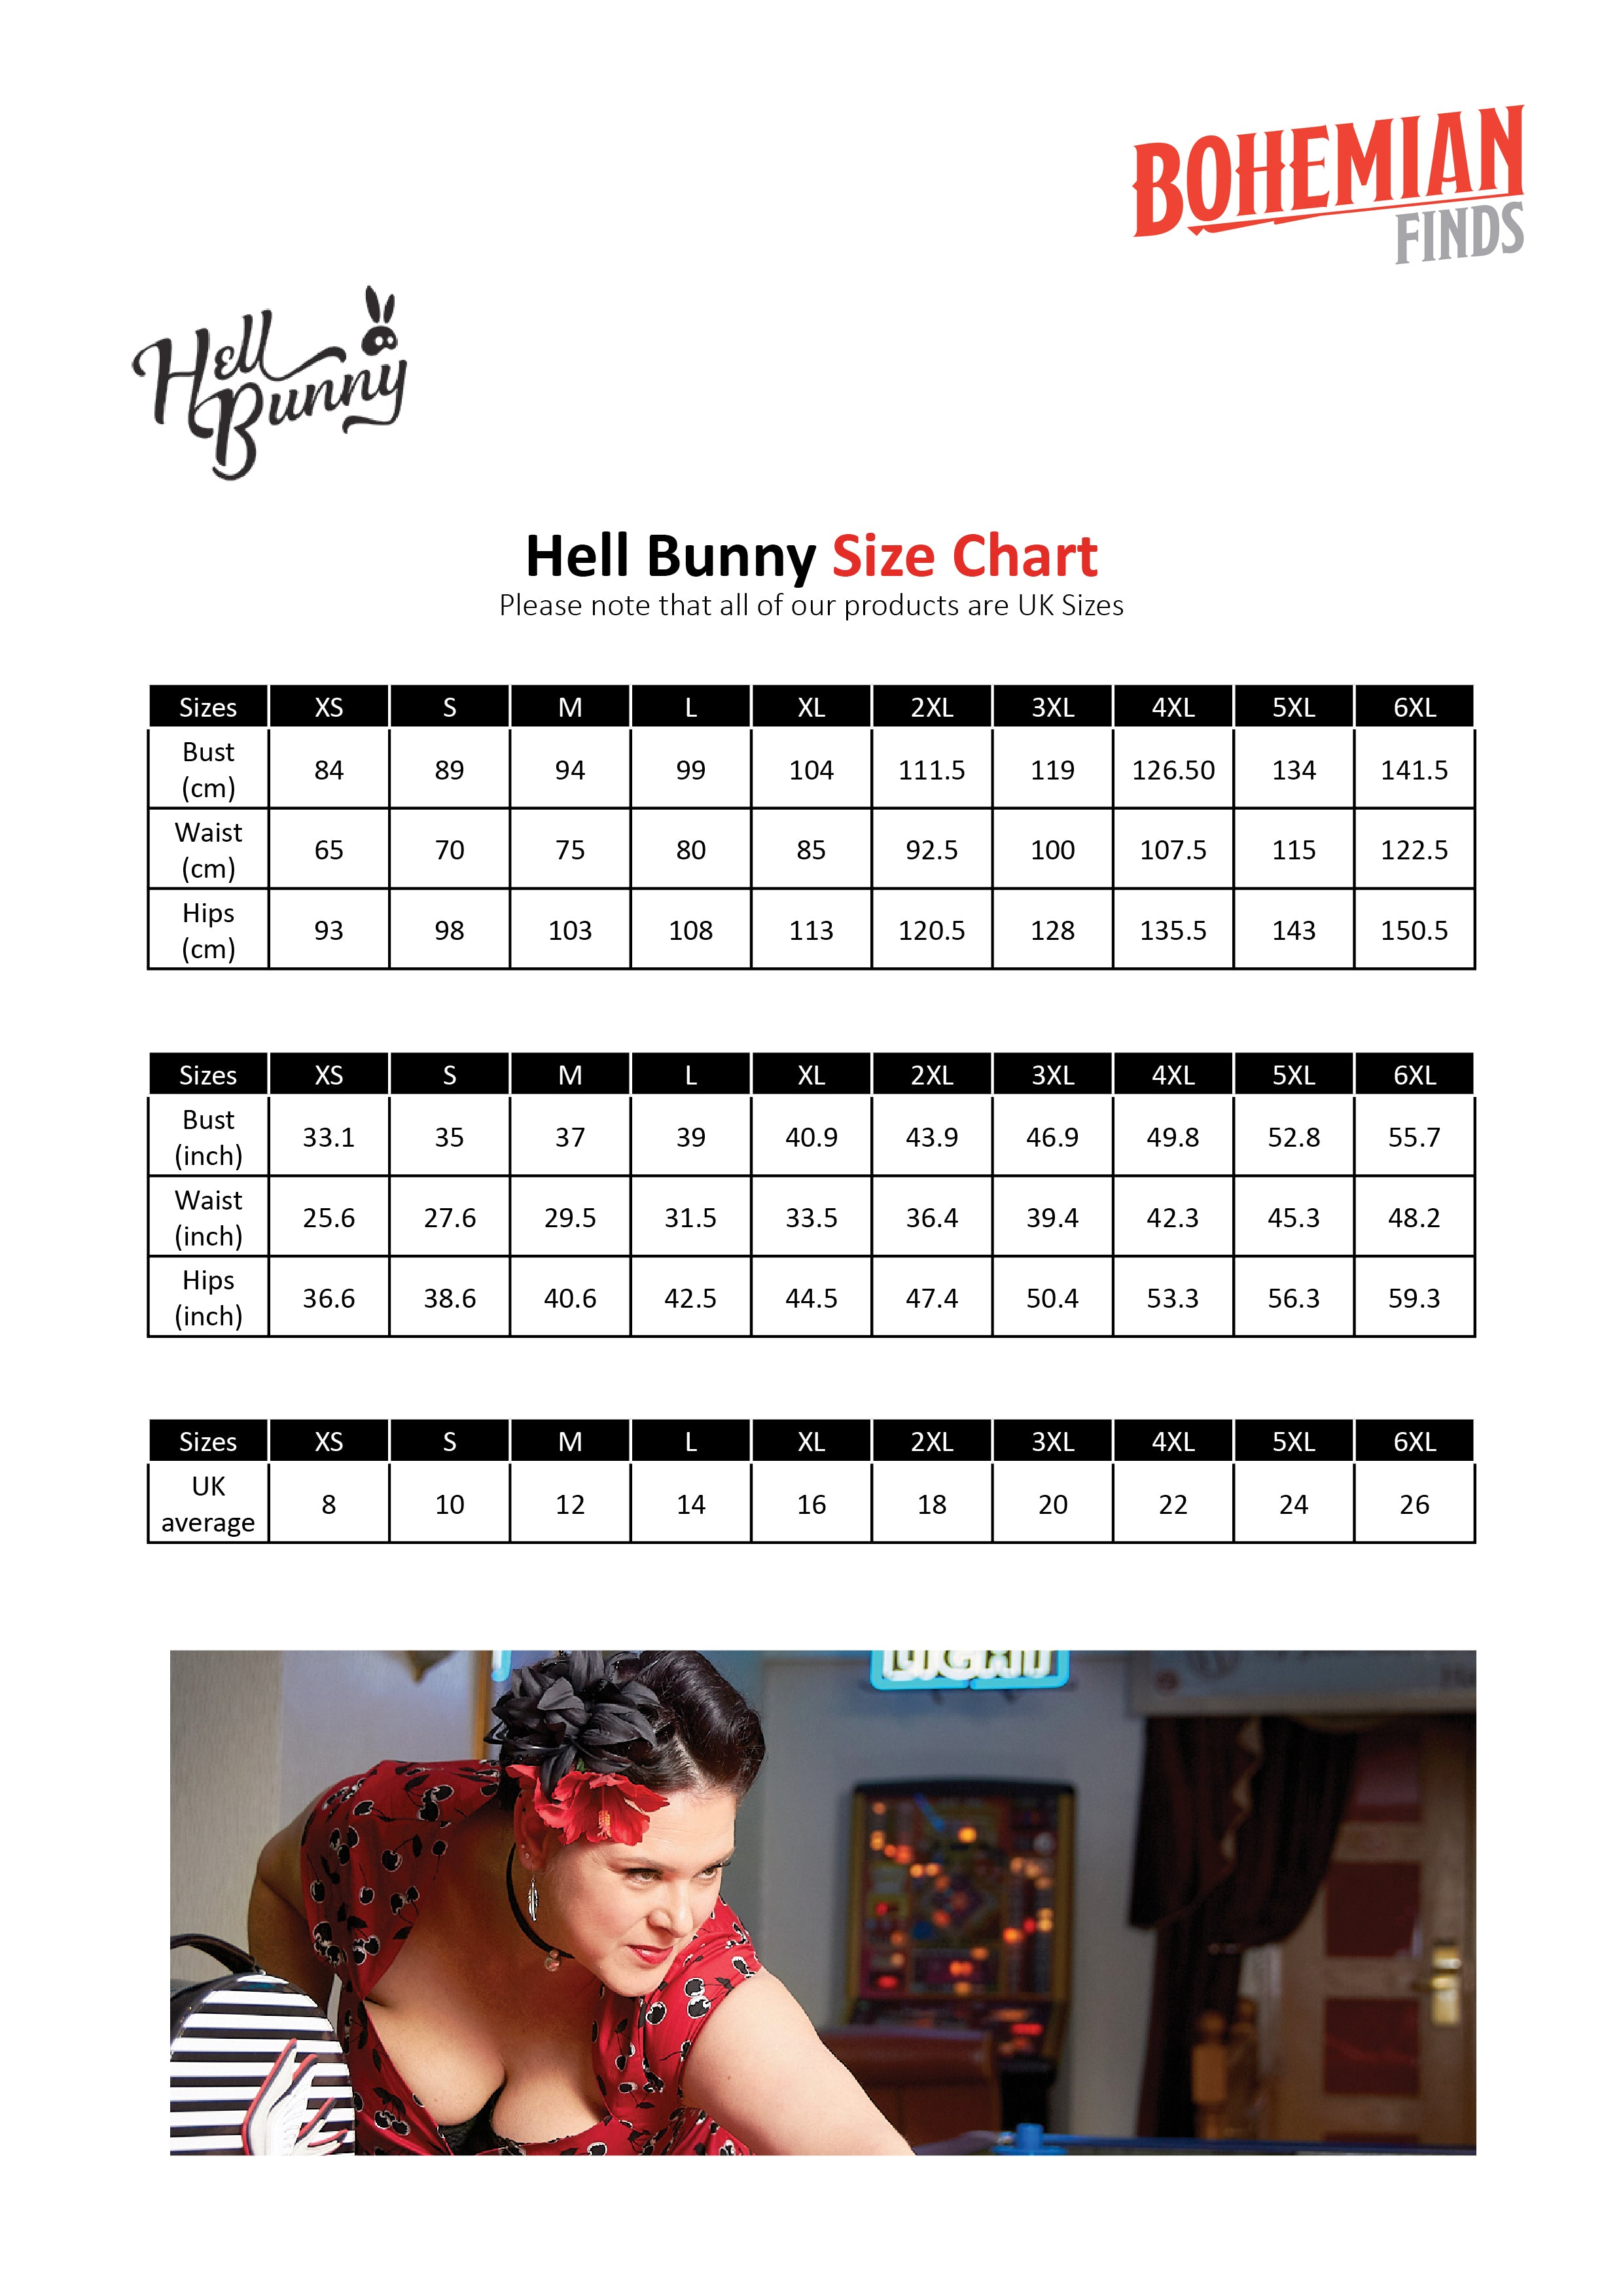 Hell Bunny Size Guide not display